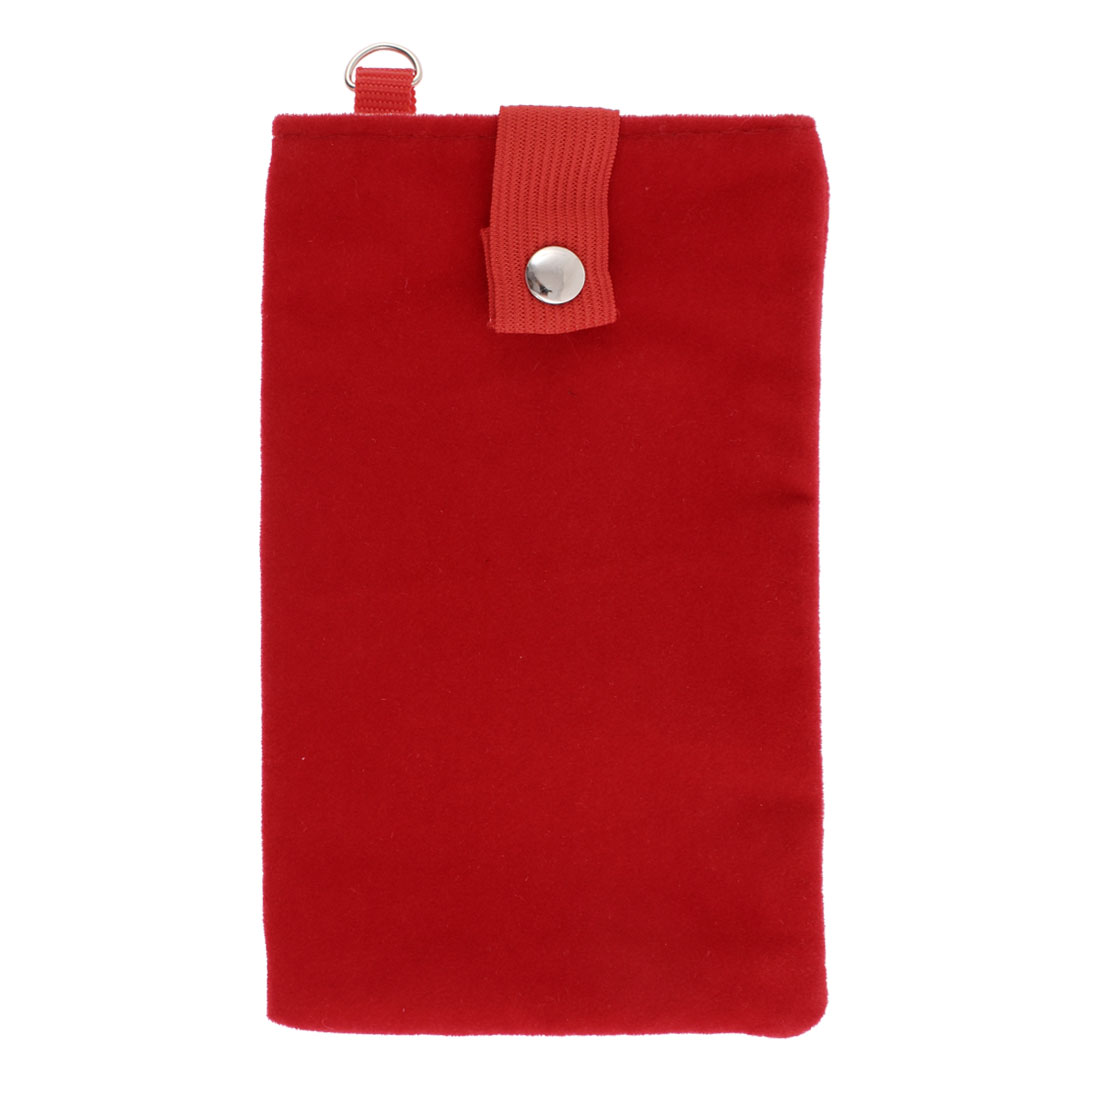 Velvet Magnetic Clasp Button Cell Phone Pouch Sleeve Bag Red 16x9.5cm